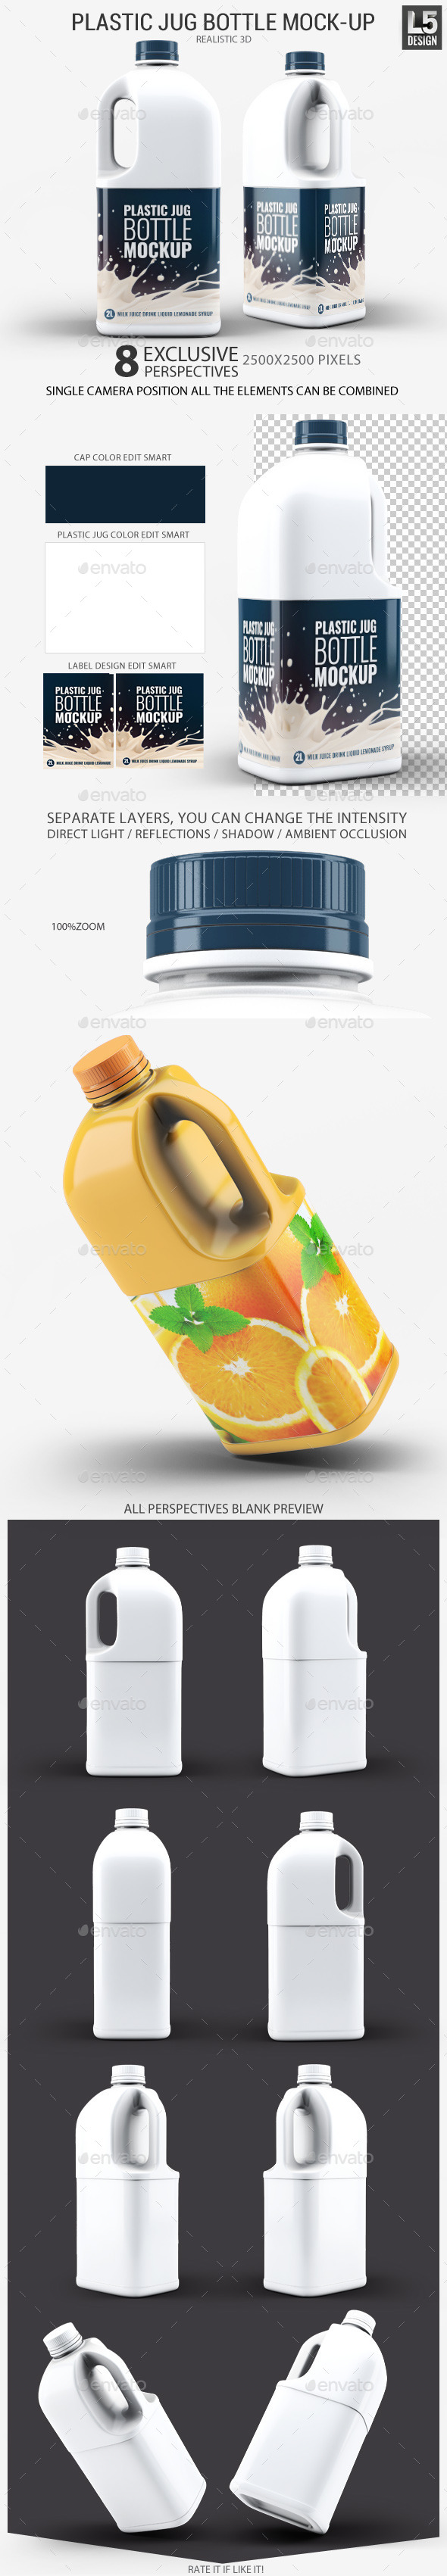 GraphicRiver Plastic Jug Bottle Mock-Up 11329965